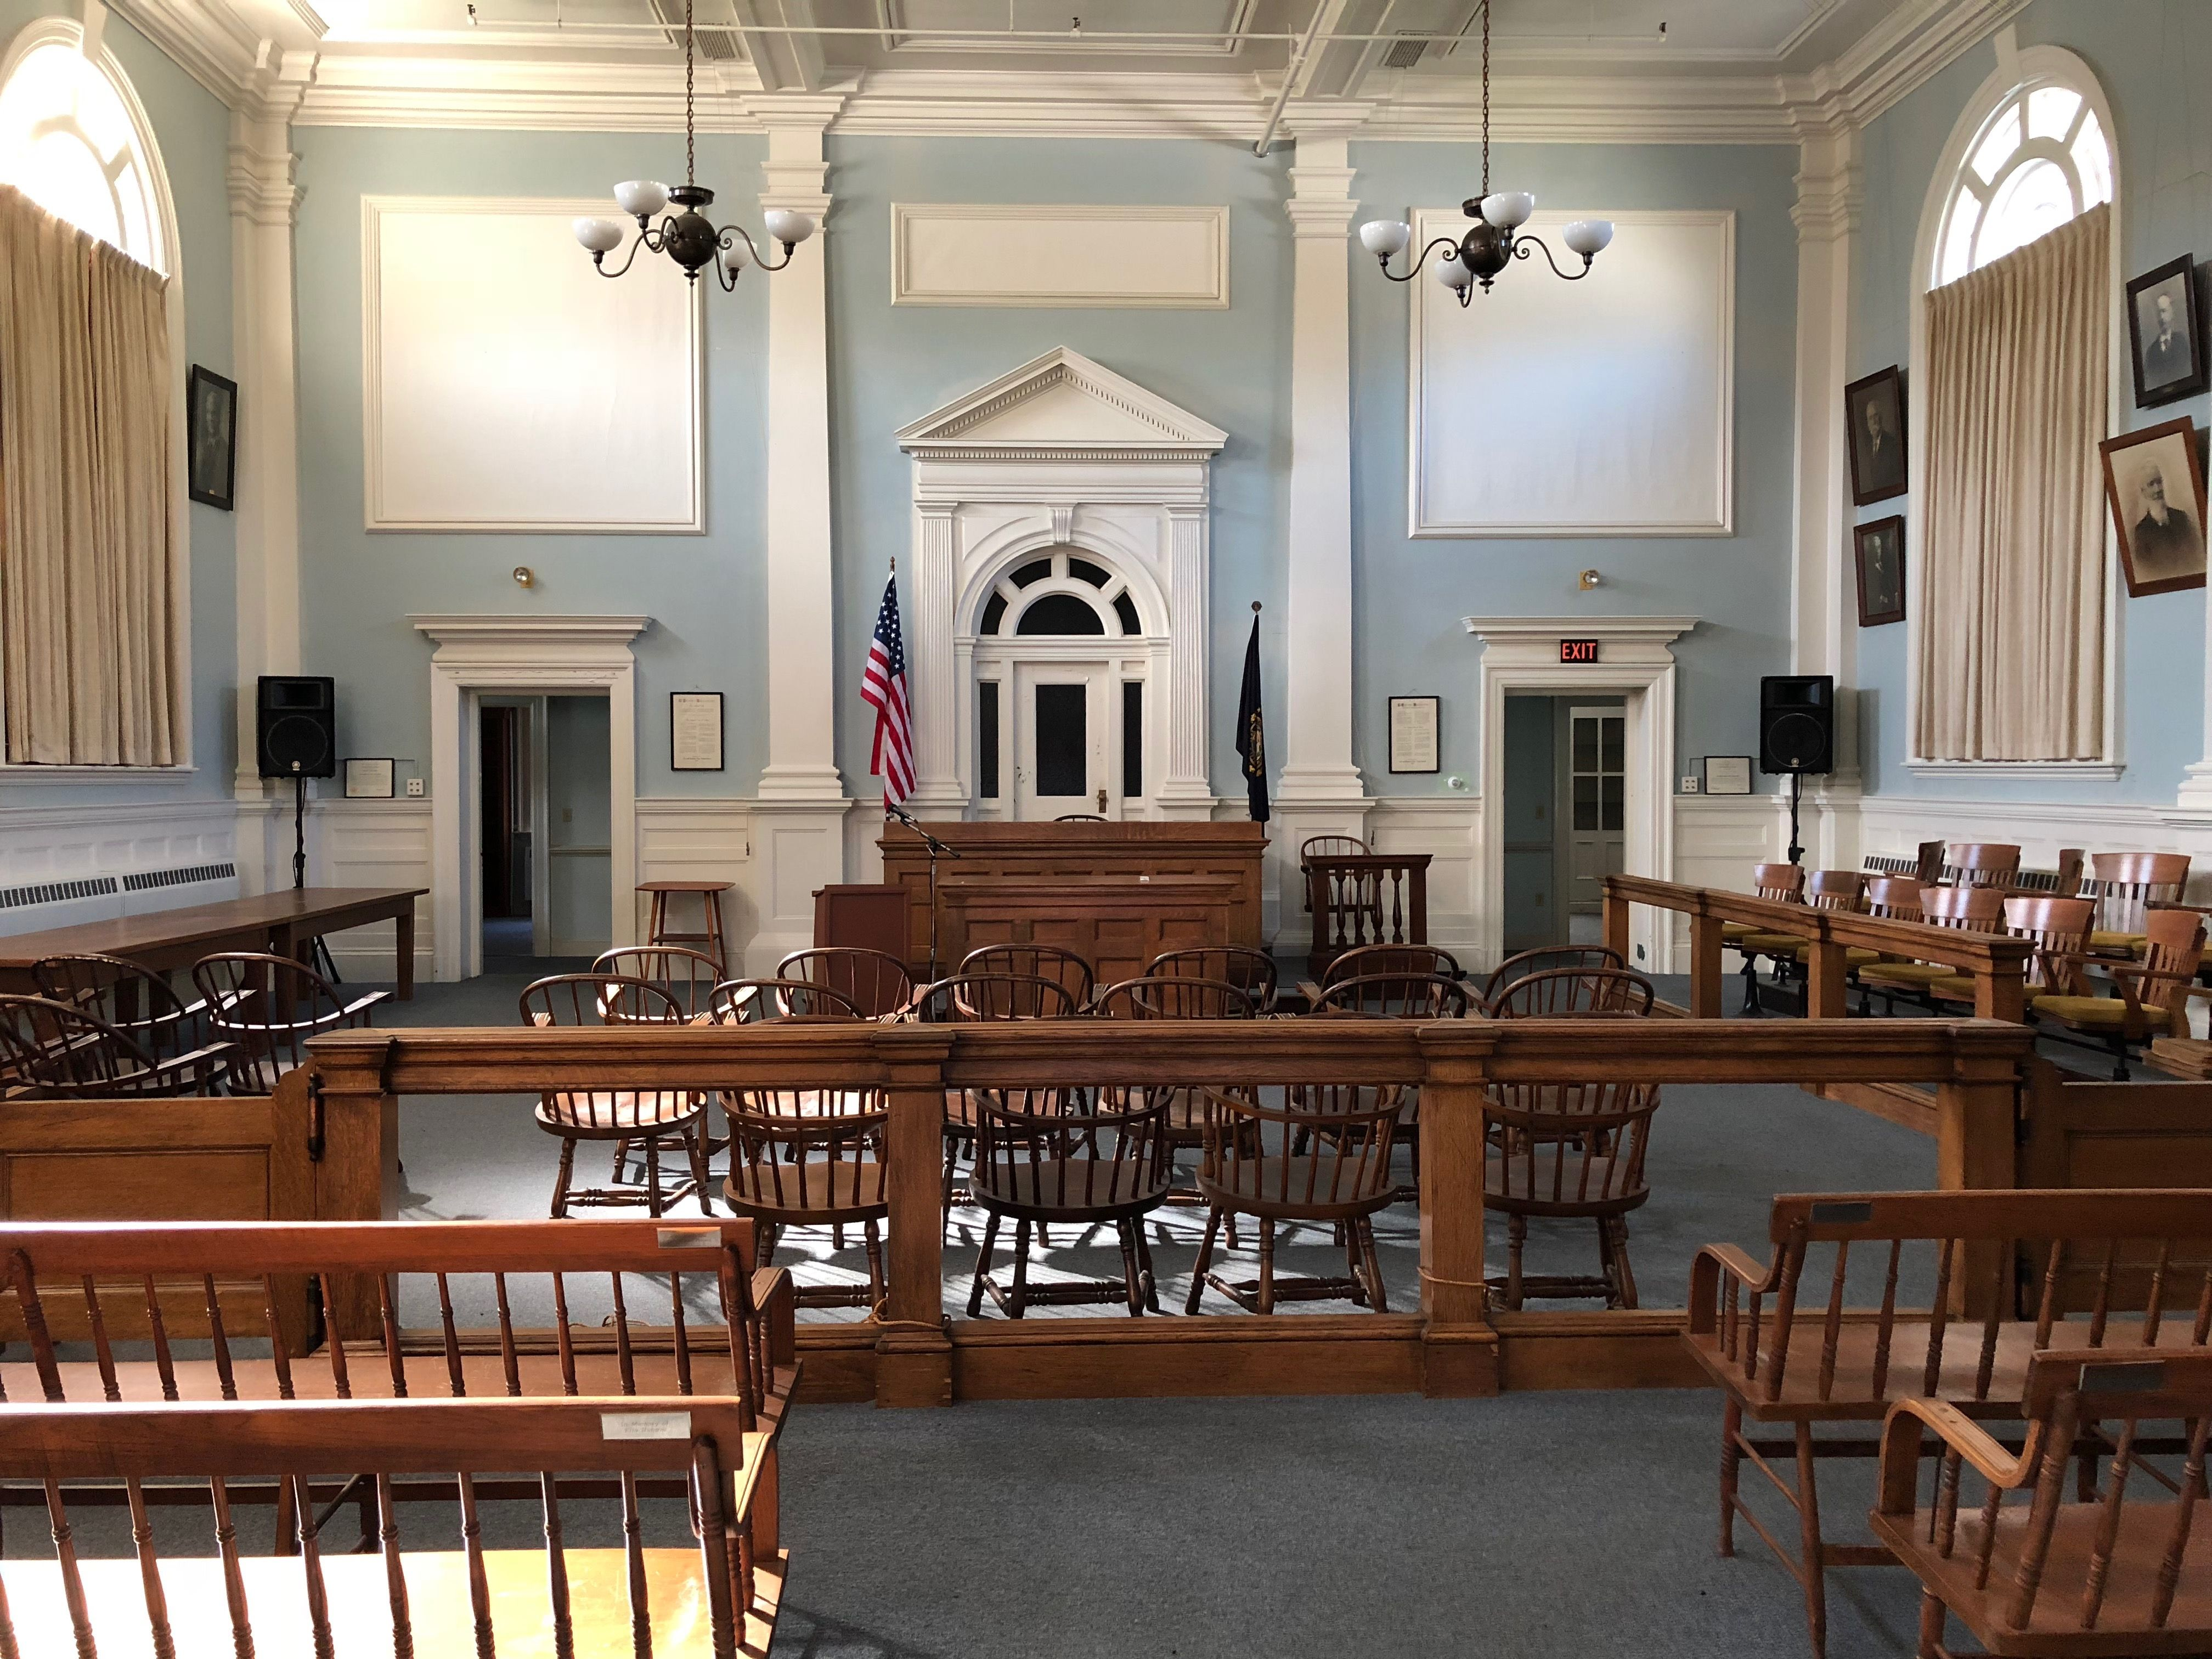 Courtroom inside 1916 carroll county courthouse in ossipee